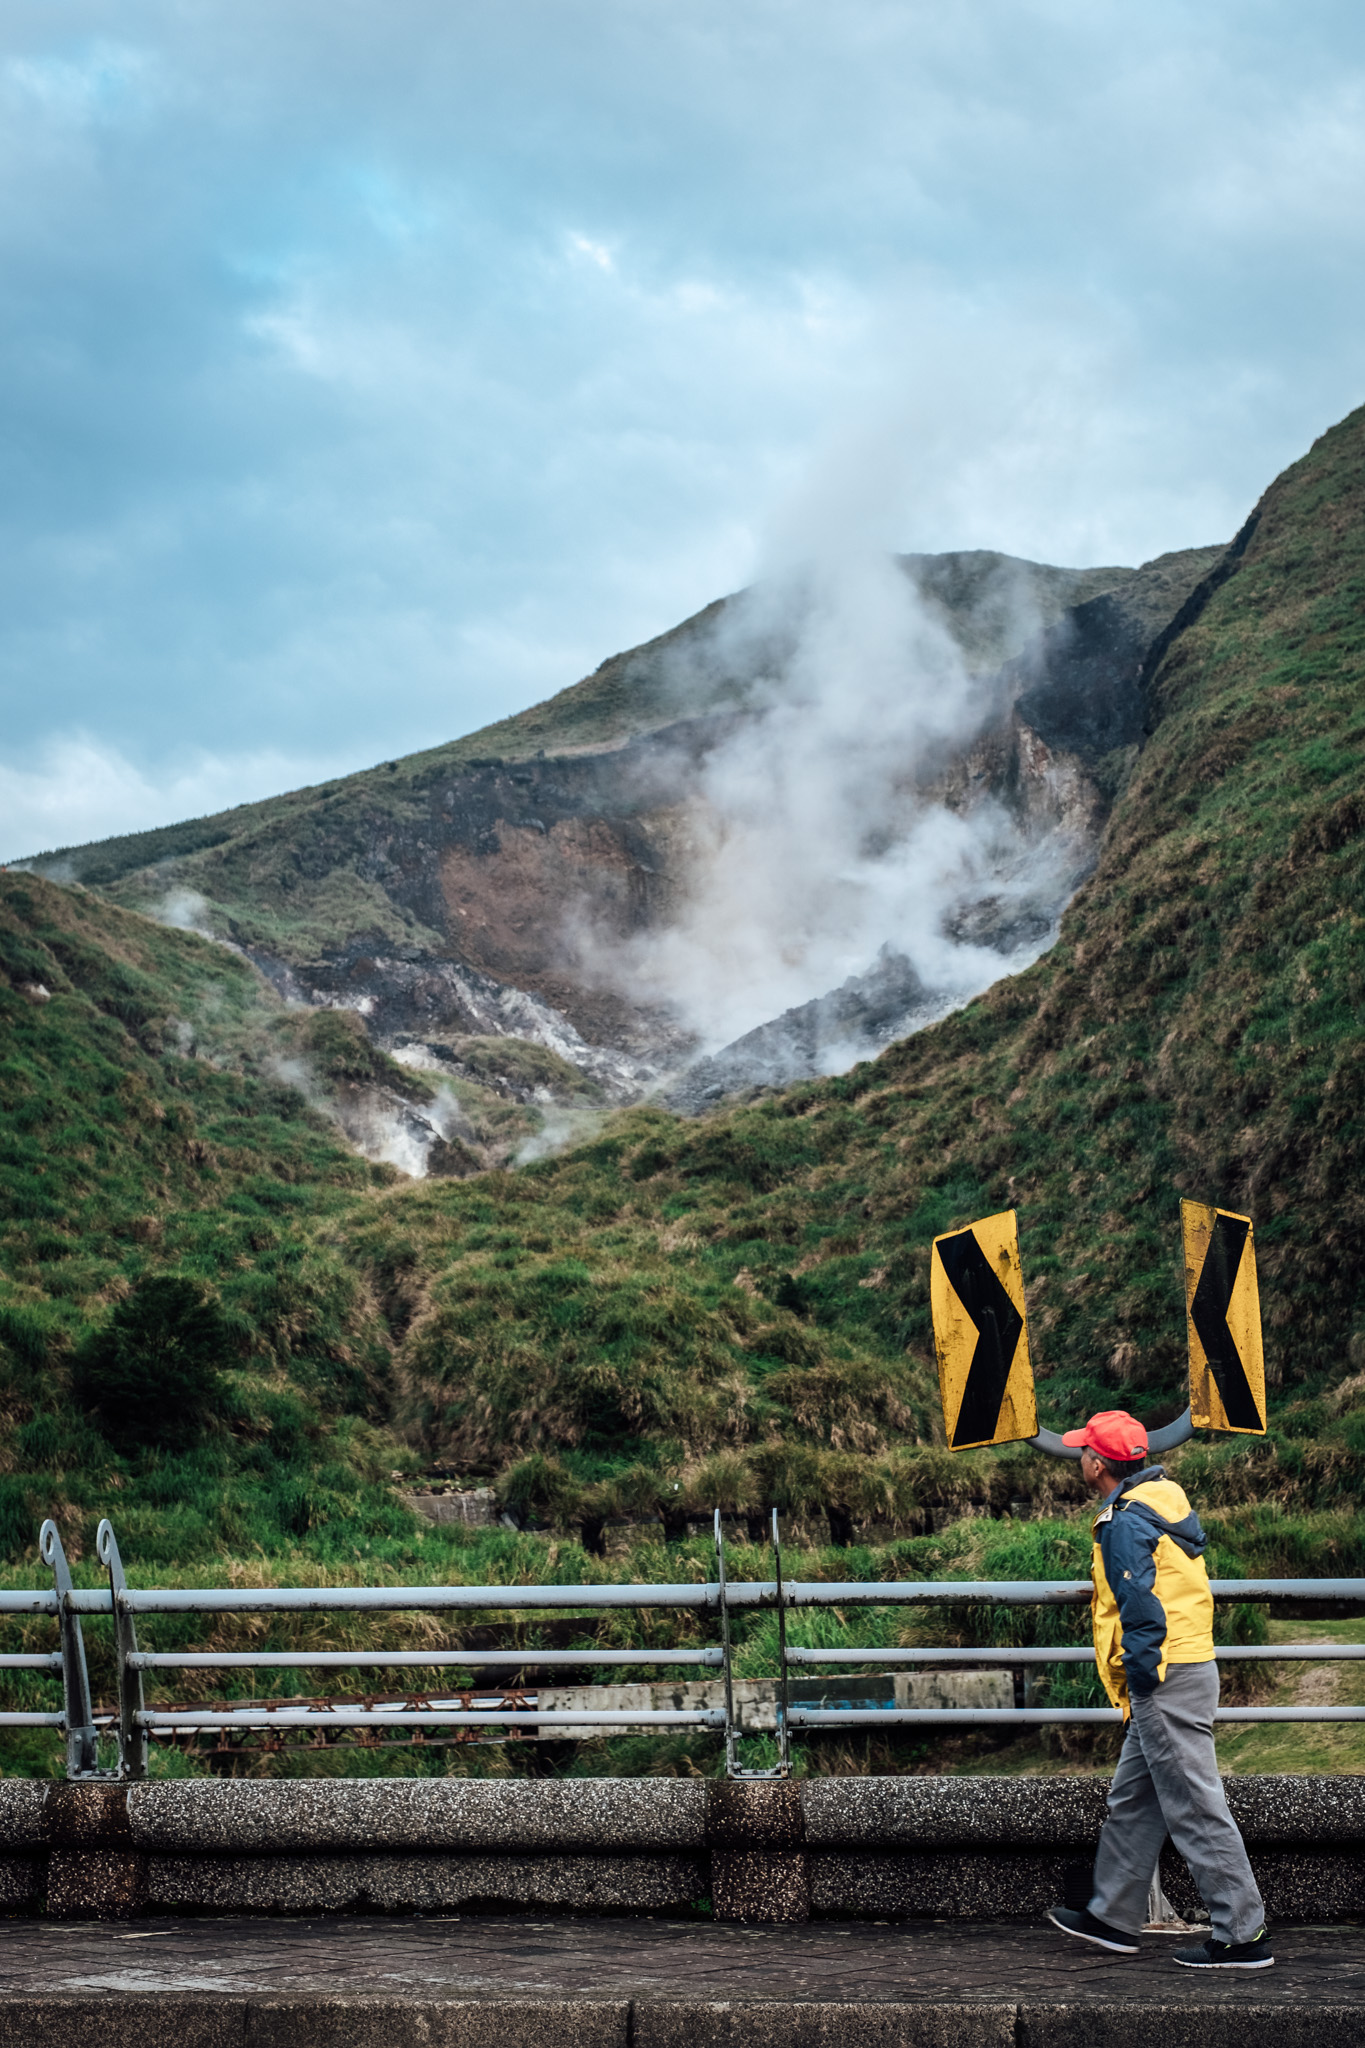 - Getting closer to fumarole at Yangmingshan National Park